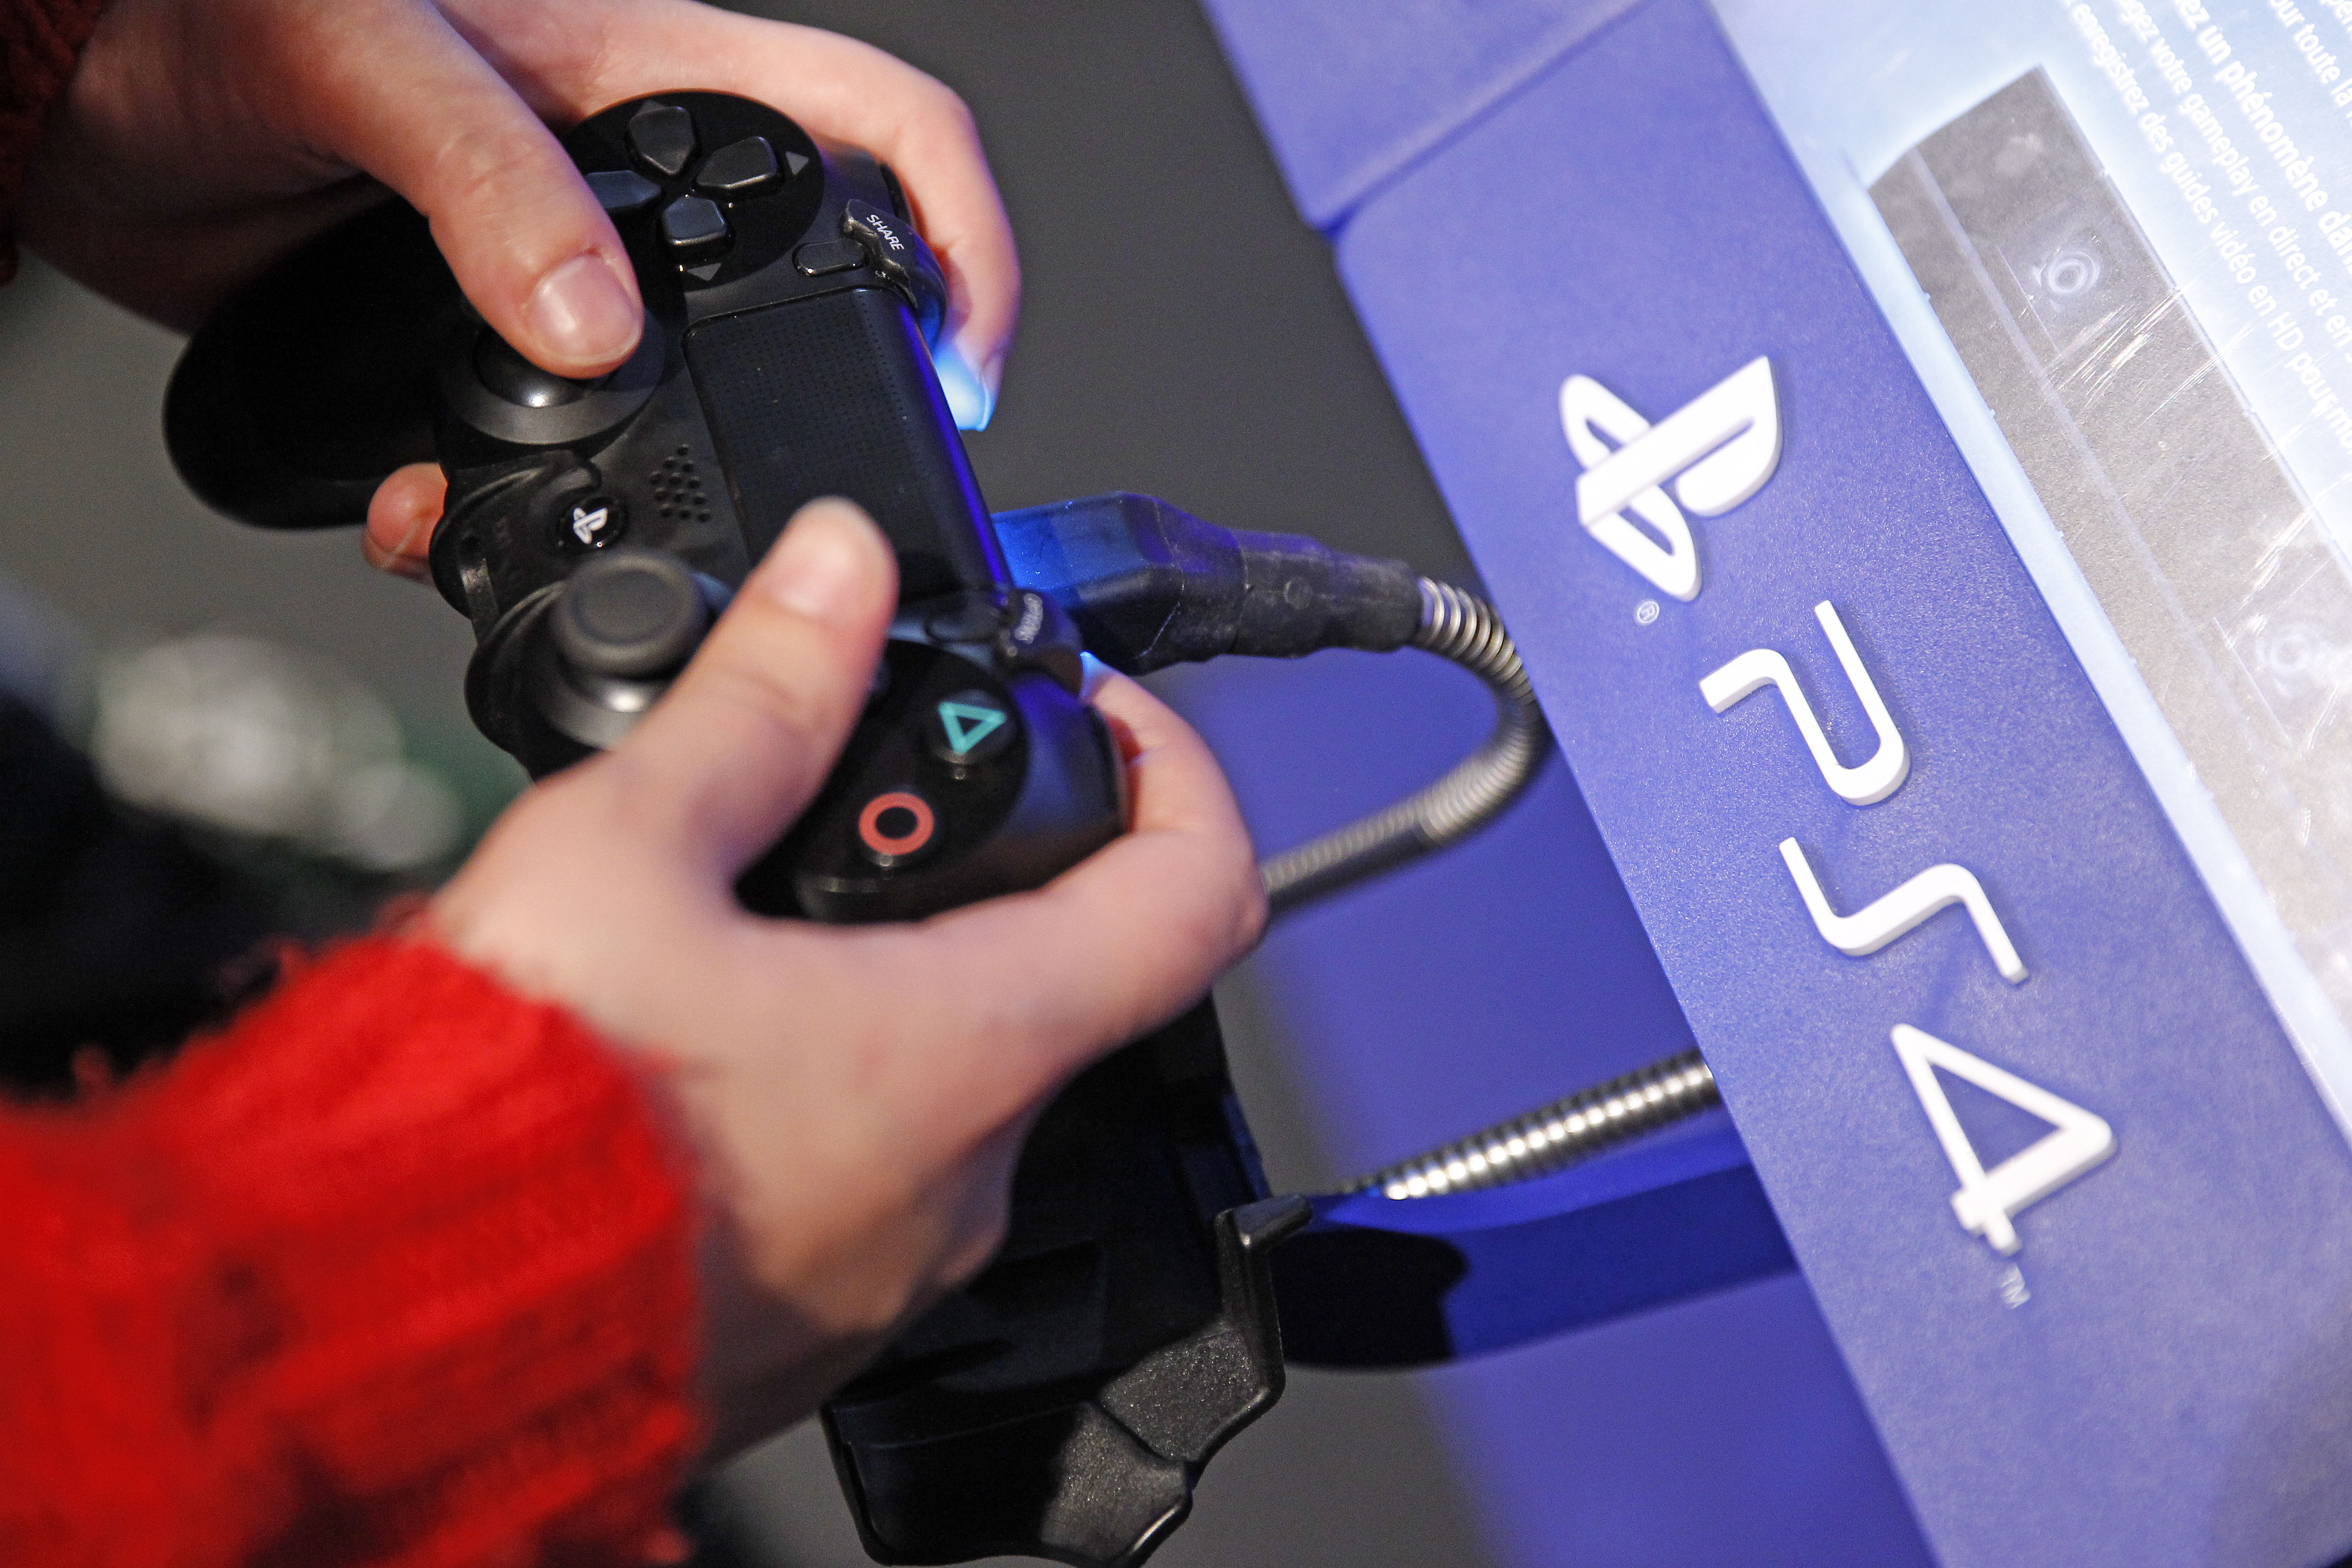 A visitor plays on Sony Playstation 4 video game console (PS4), produced by Sony Corp during the 'Noel de Geek' at the Cite des Sciences et de l'industrie on Dec. 23, 2014 in Paris, France.